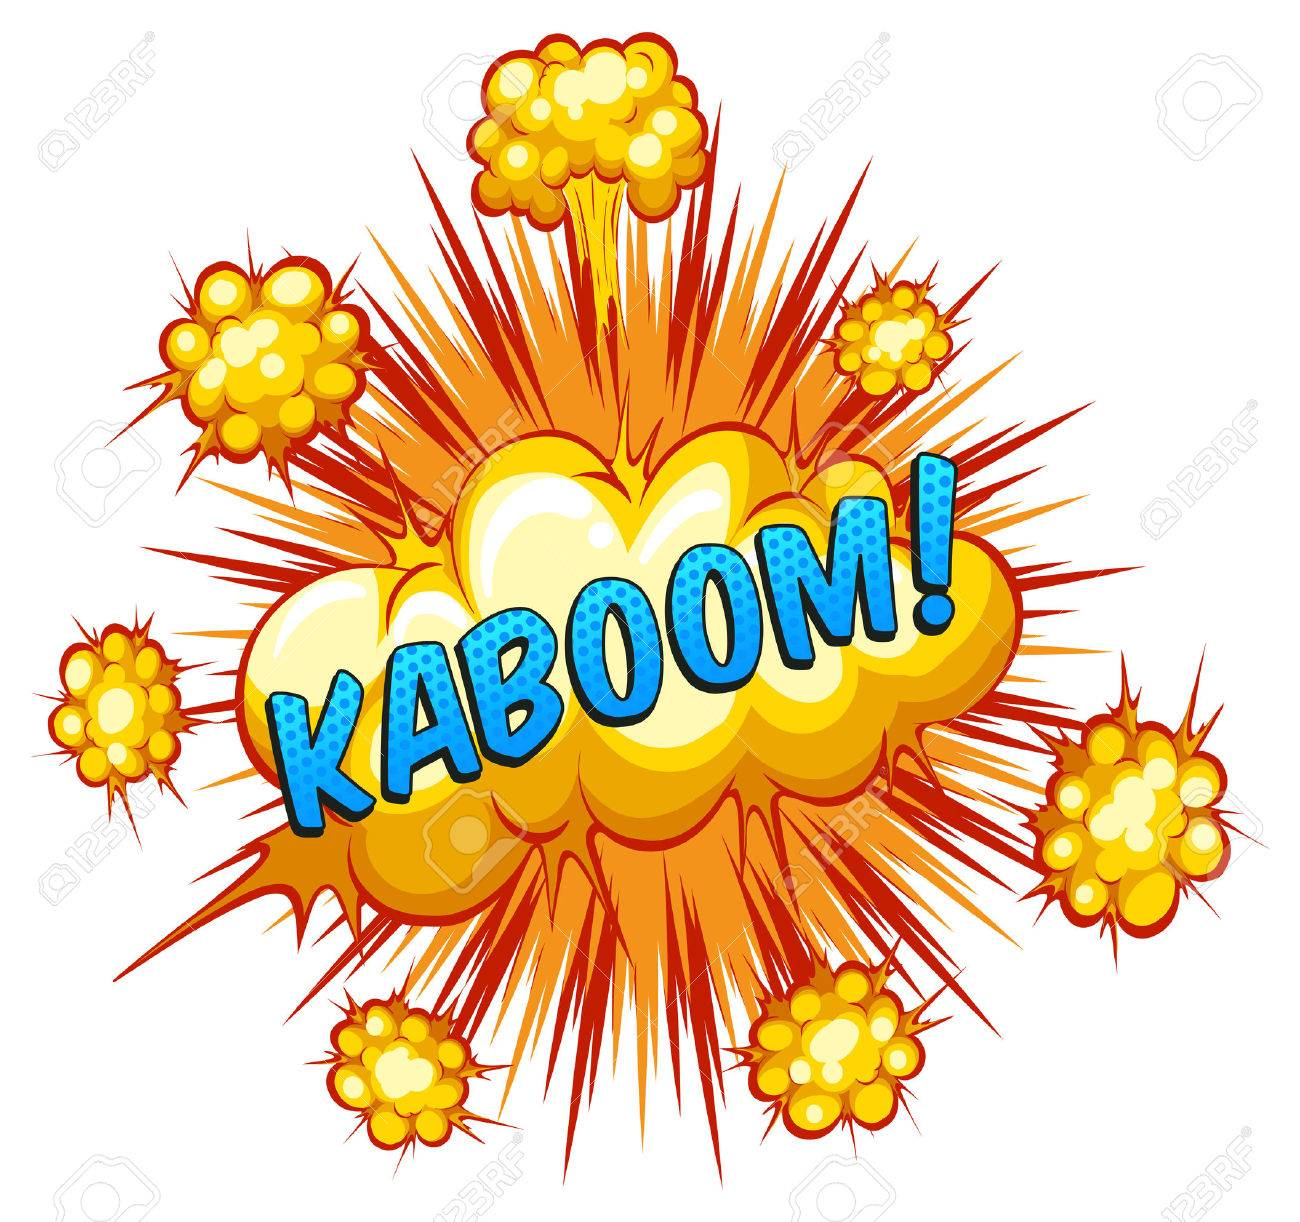 Word Kaboom With Explosion Background Royalty Cliparts 1300x1222